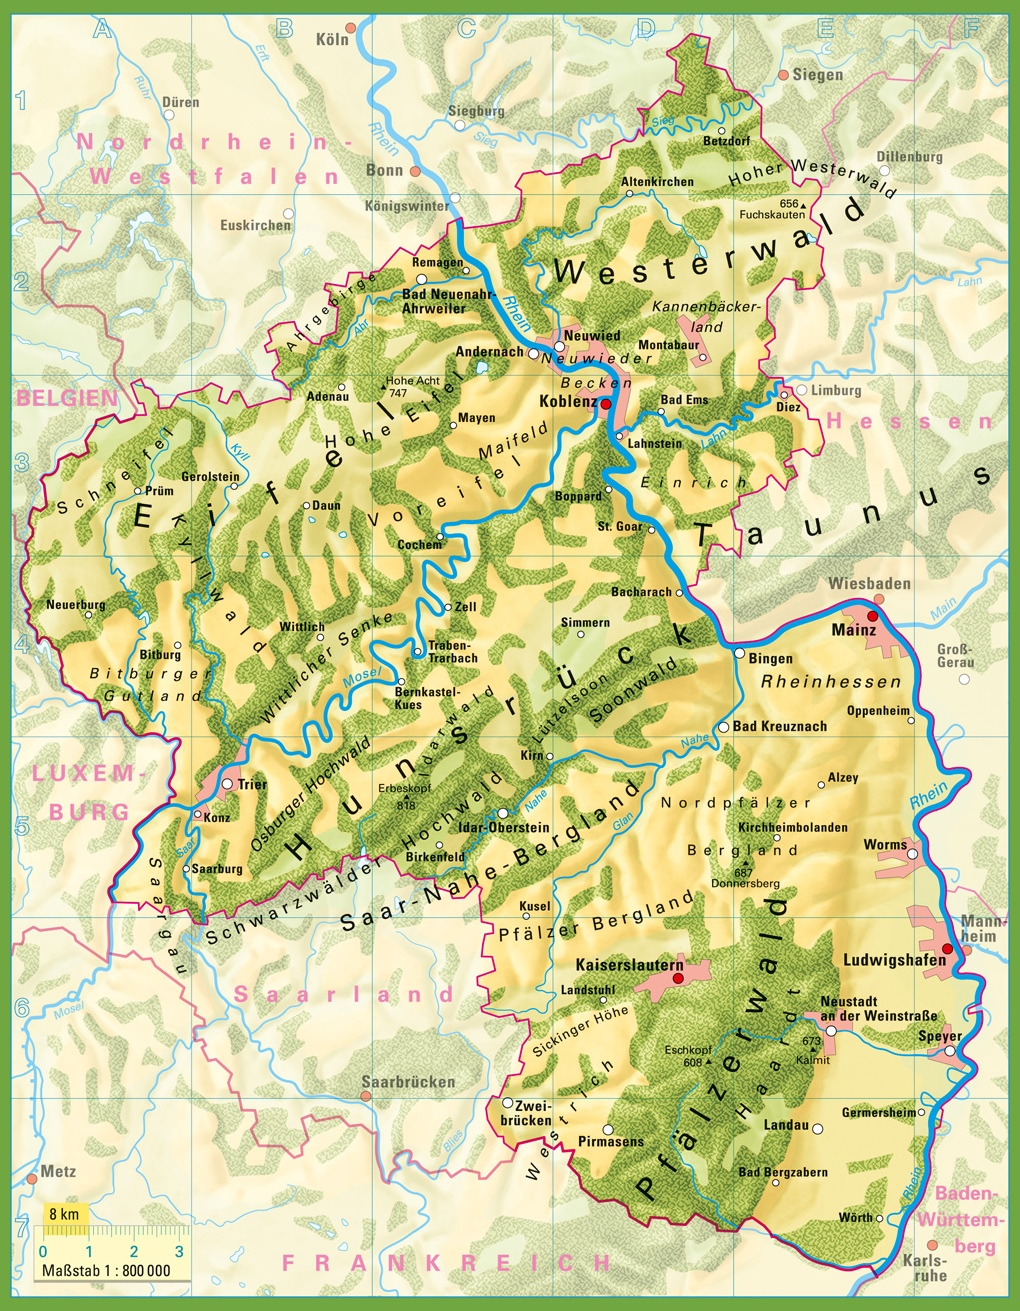 RhinelandPalatinate Physical Map - Germany physical map